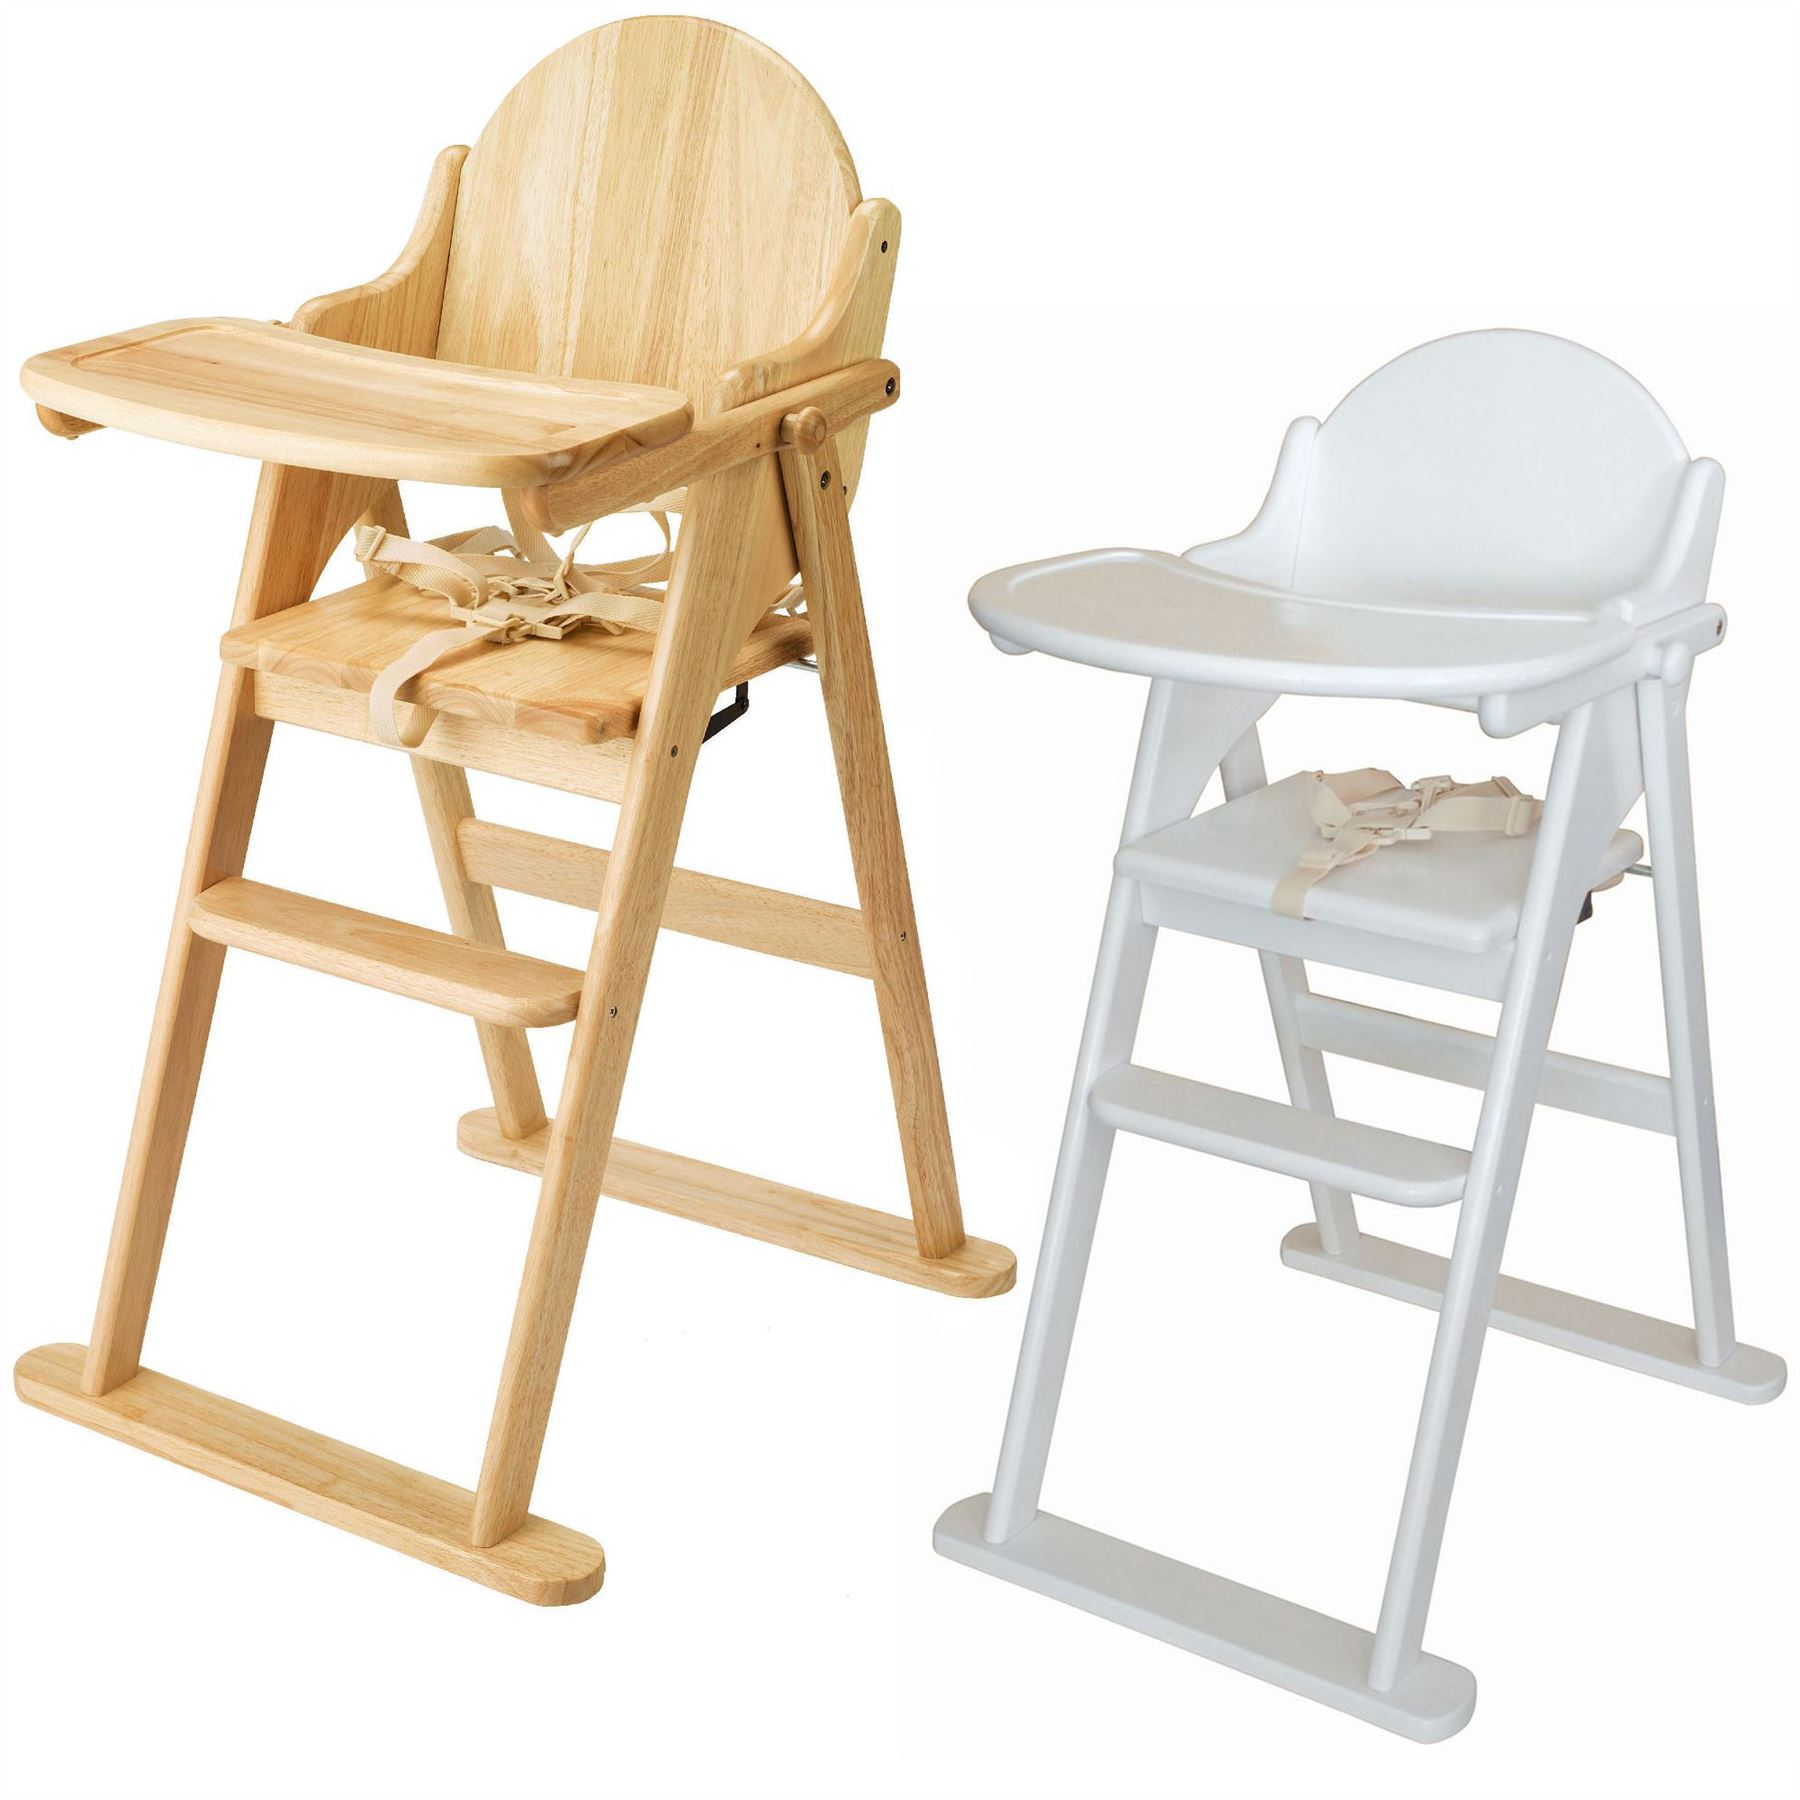 East Coast FOLDING HIGHCHAIR SOLID WOOD Baby Child Toddler Feeding